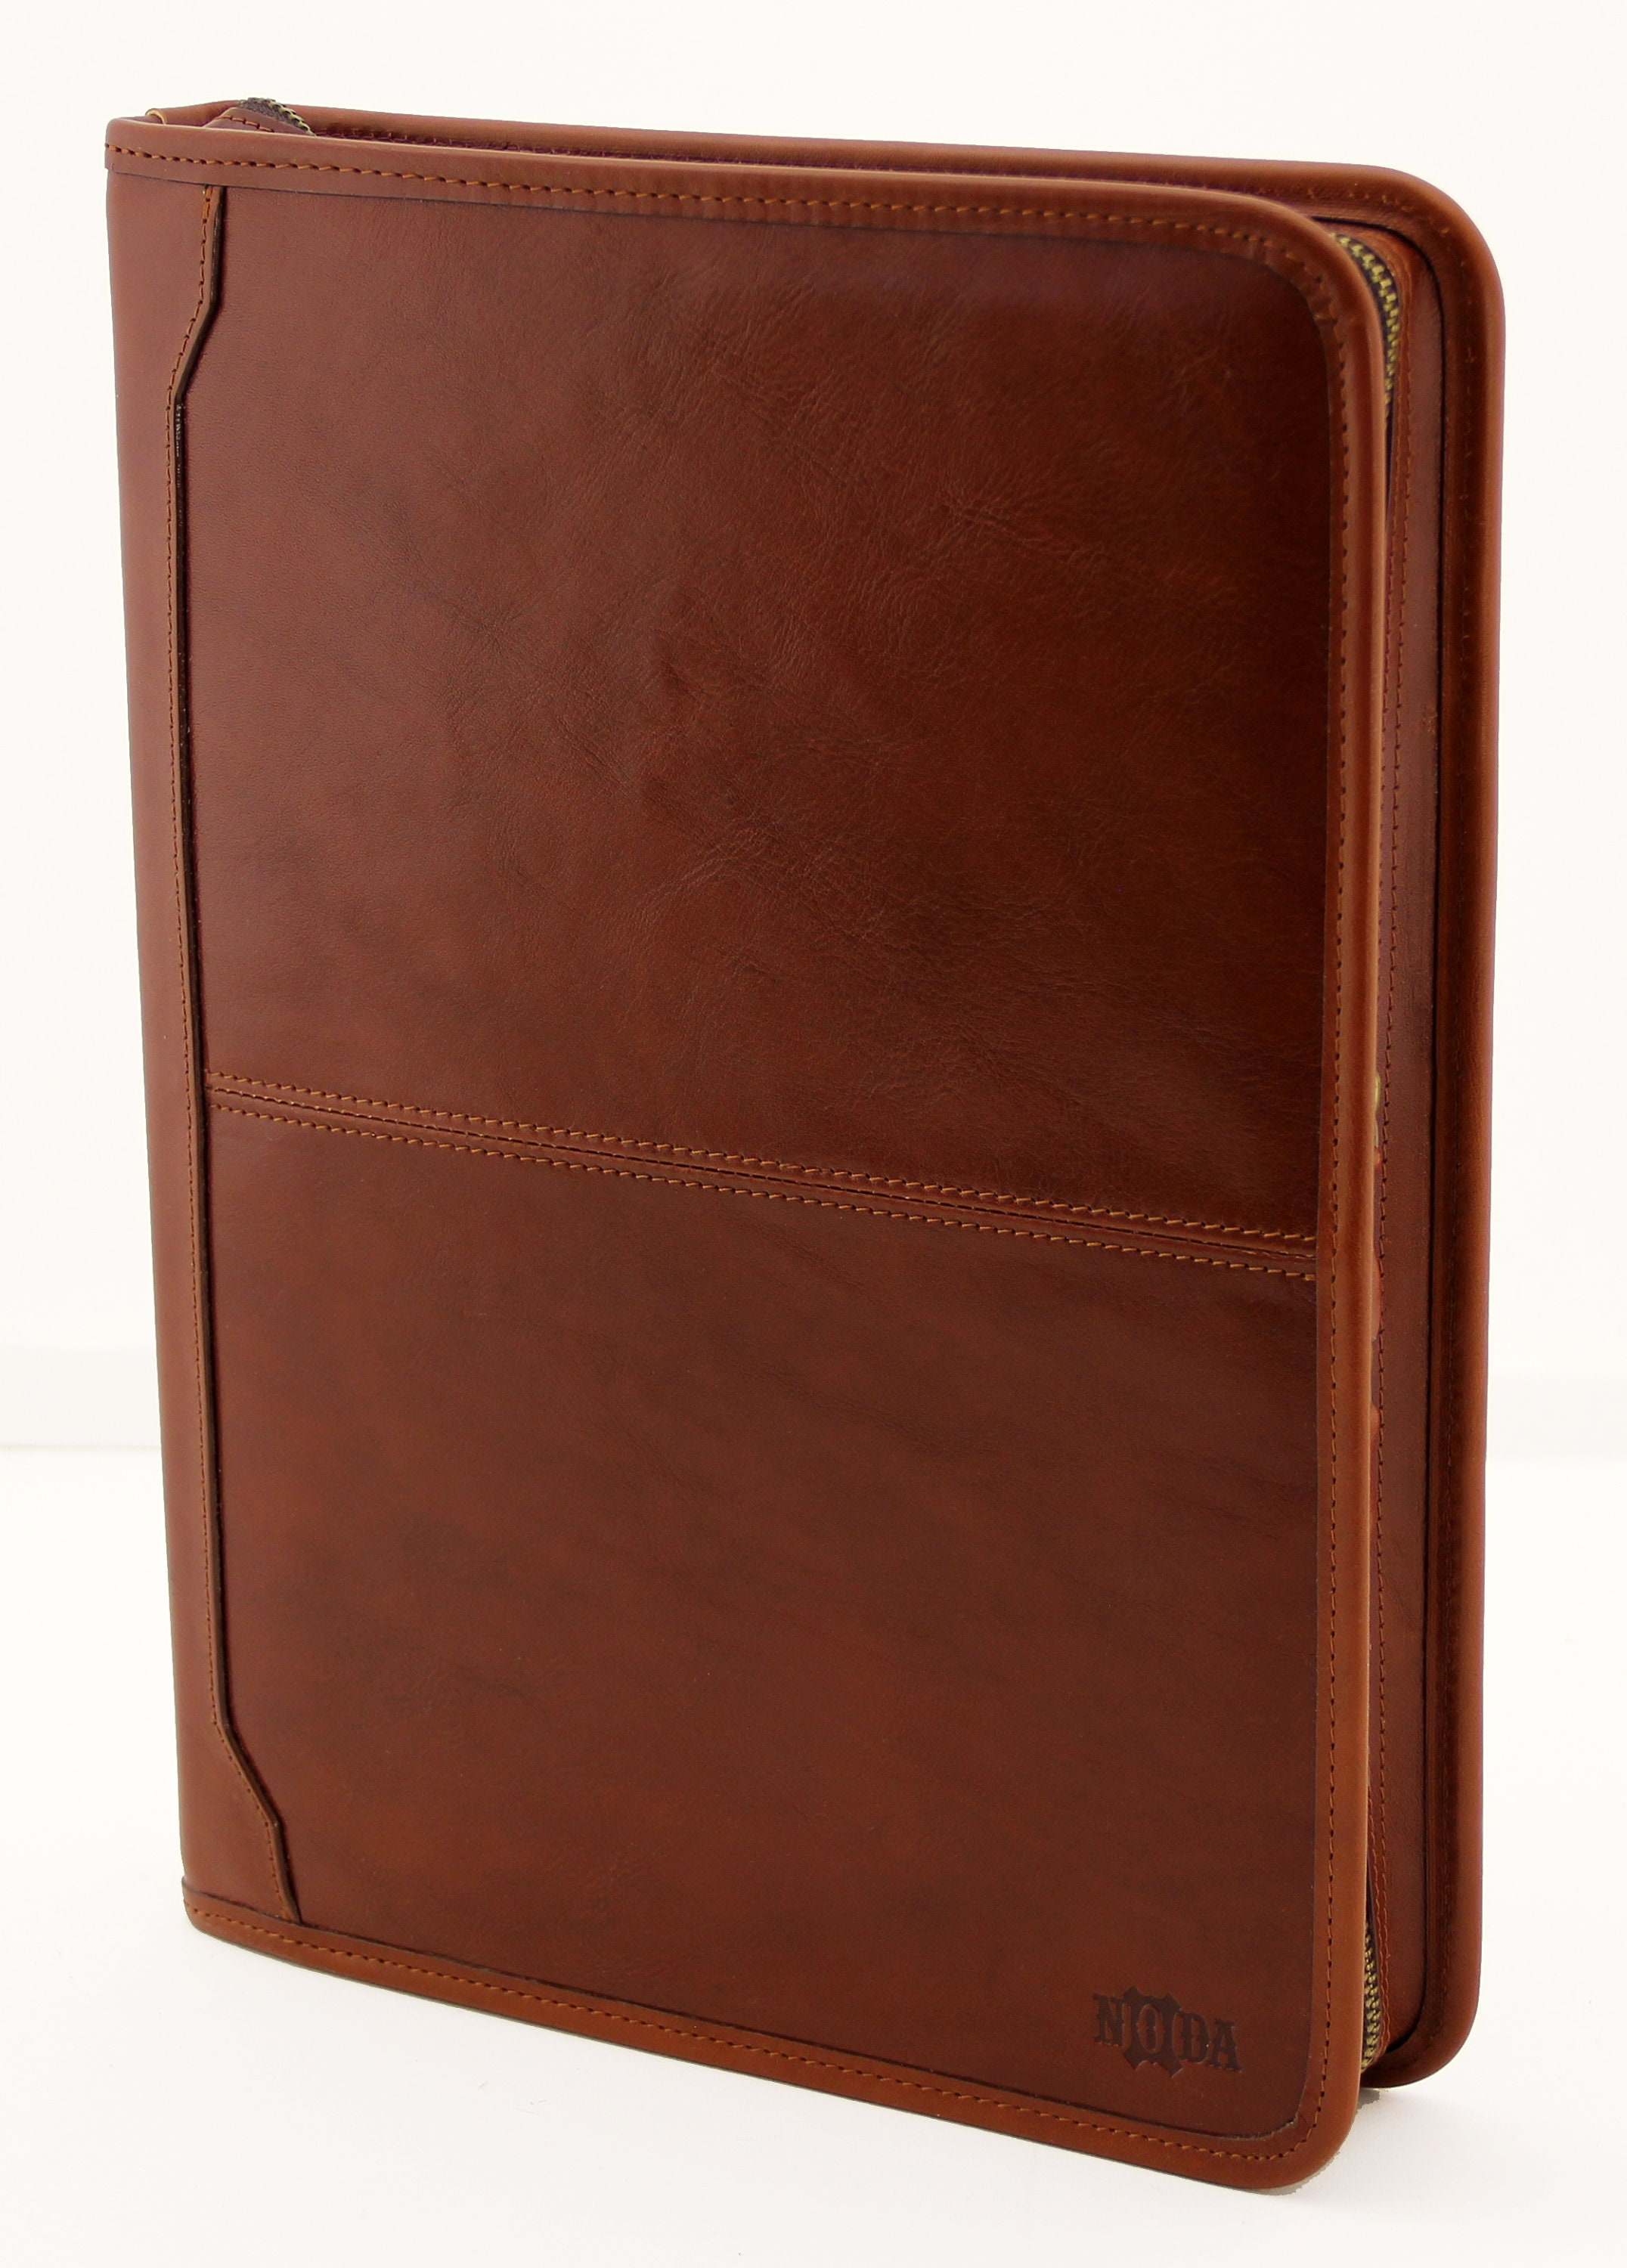 document holder leather a4 with alp logo